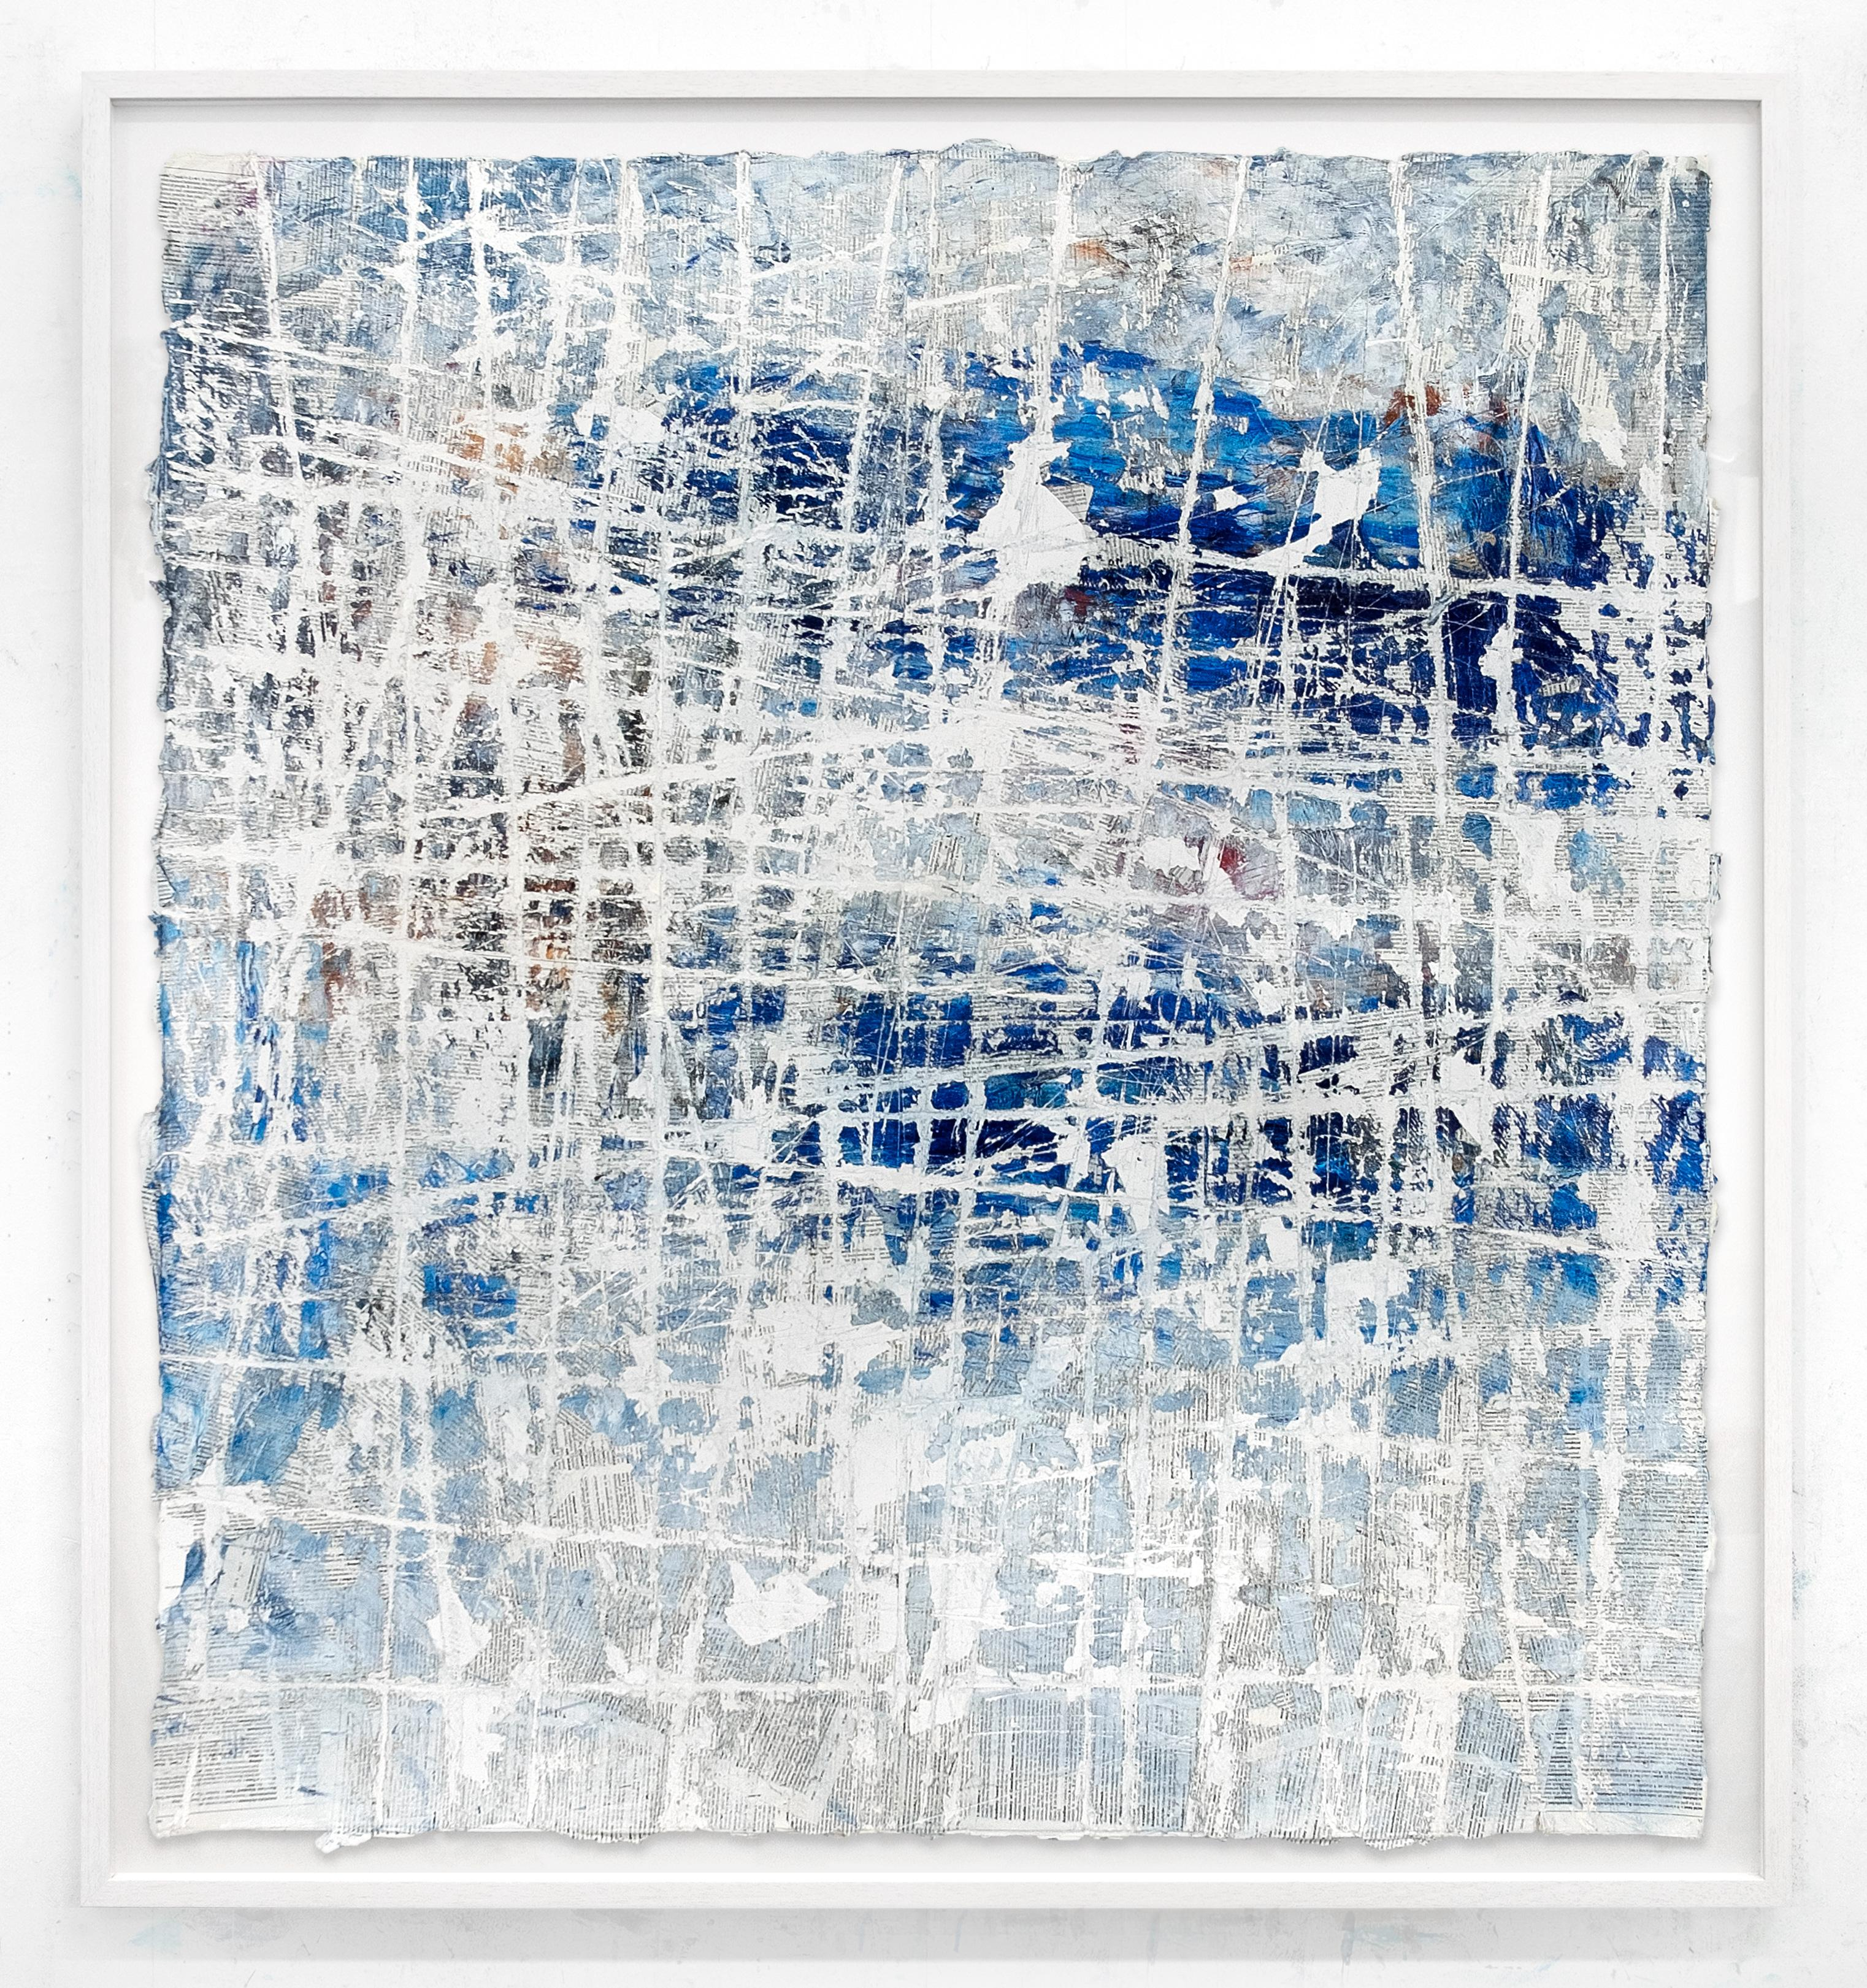 The West Side- street art blue and white abstract painting on paper framed